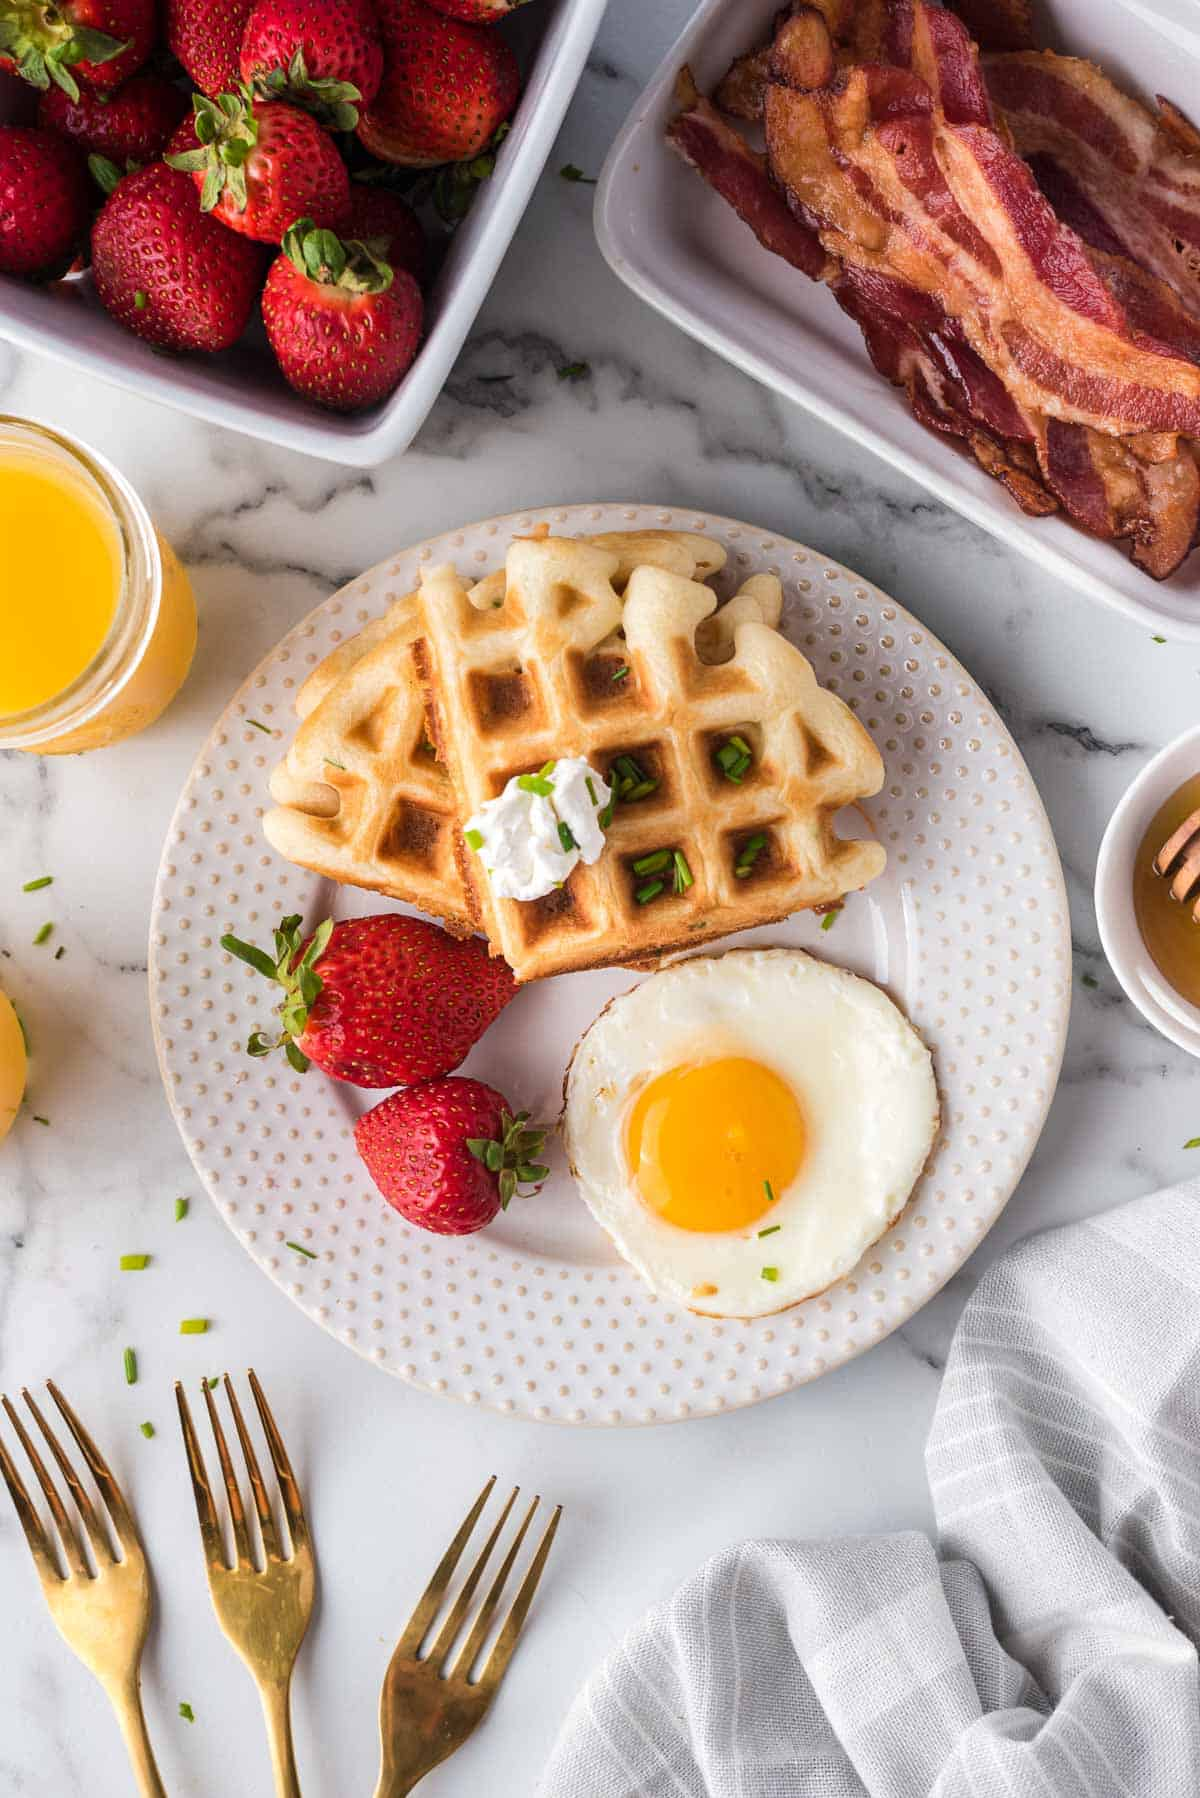 Overhead view of a plate with waffles, strawberries, and an egg.